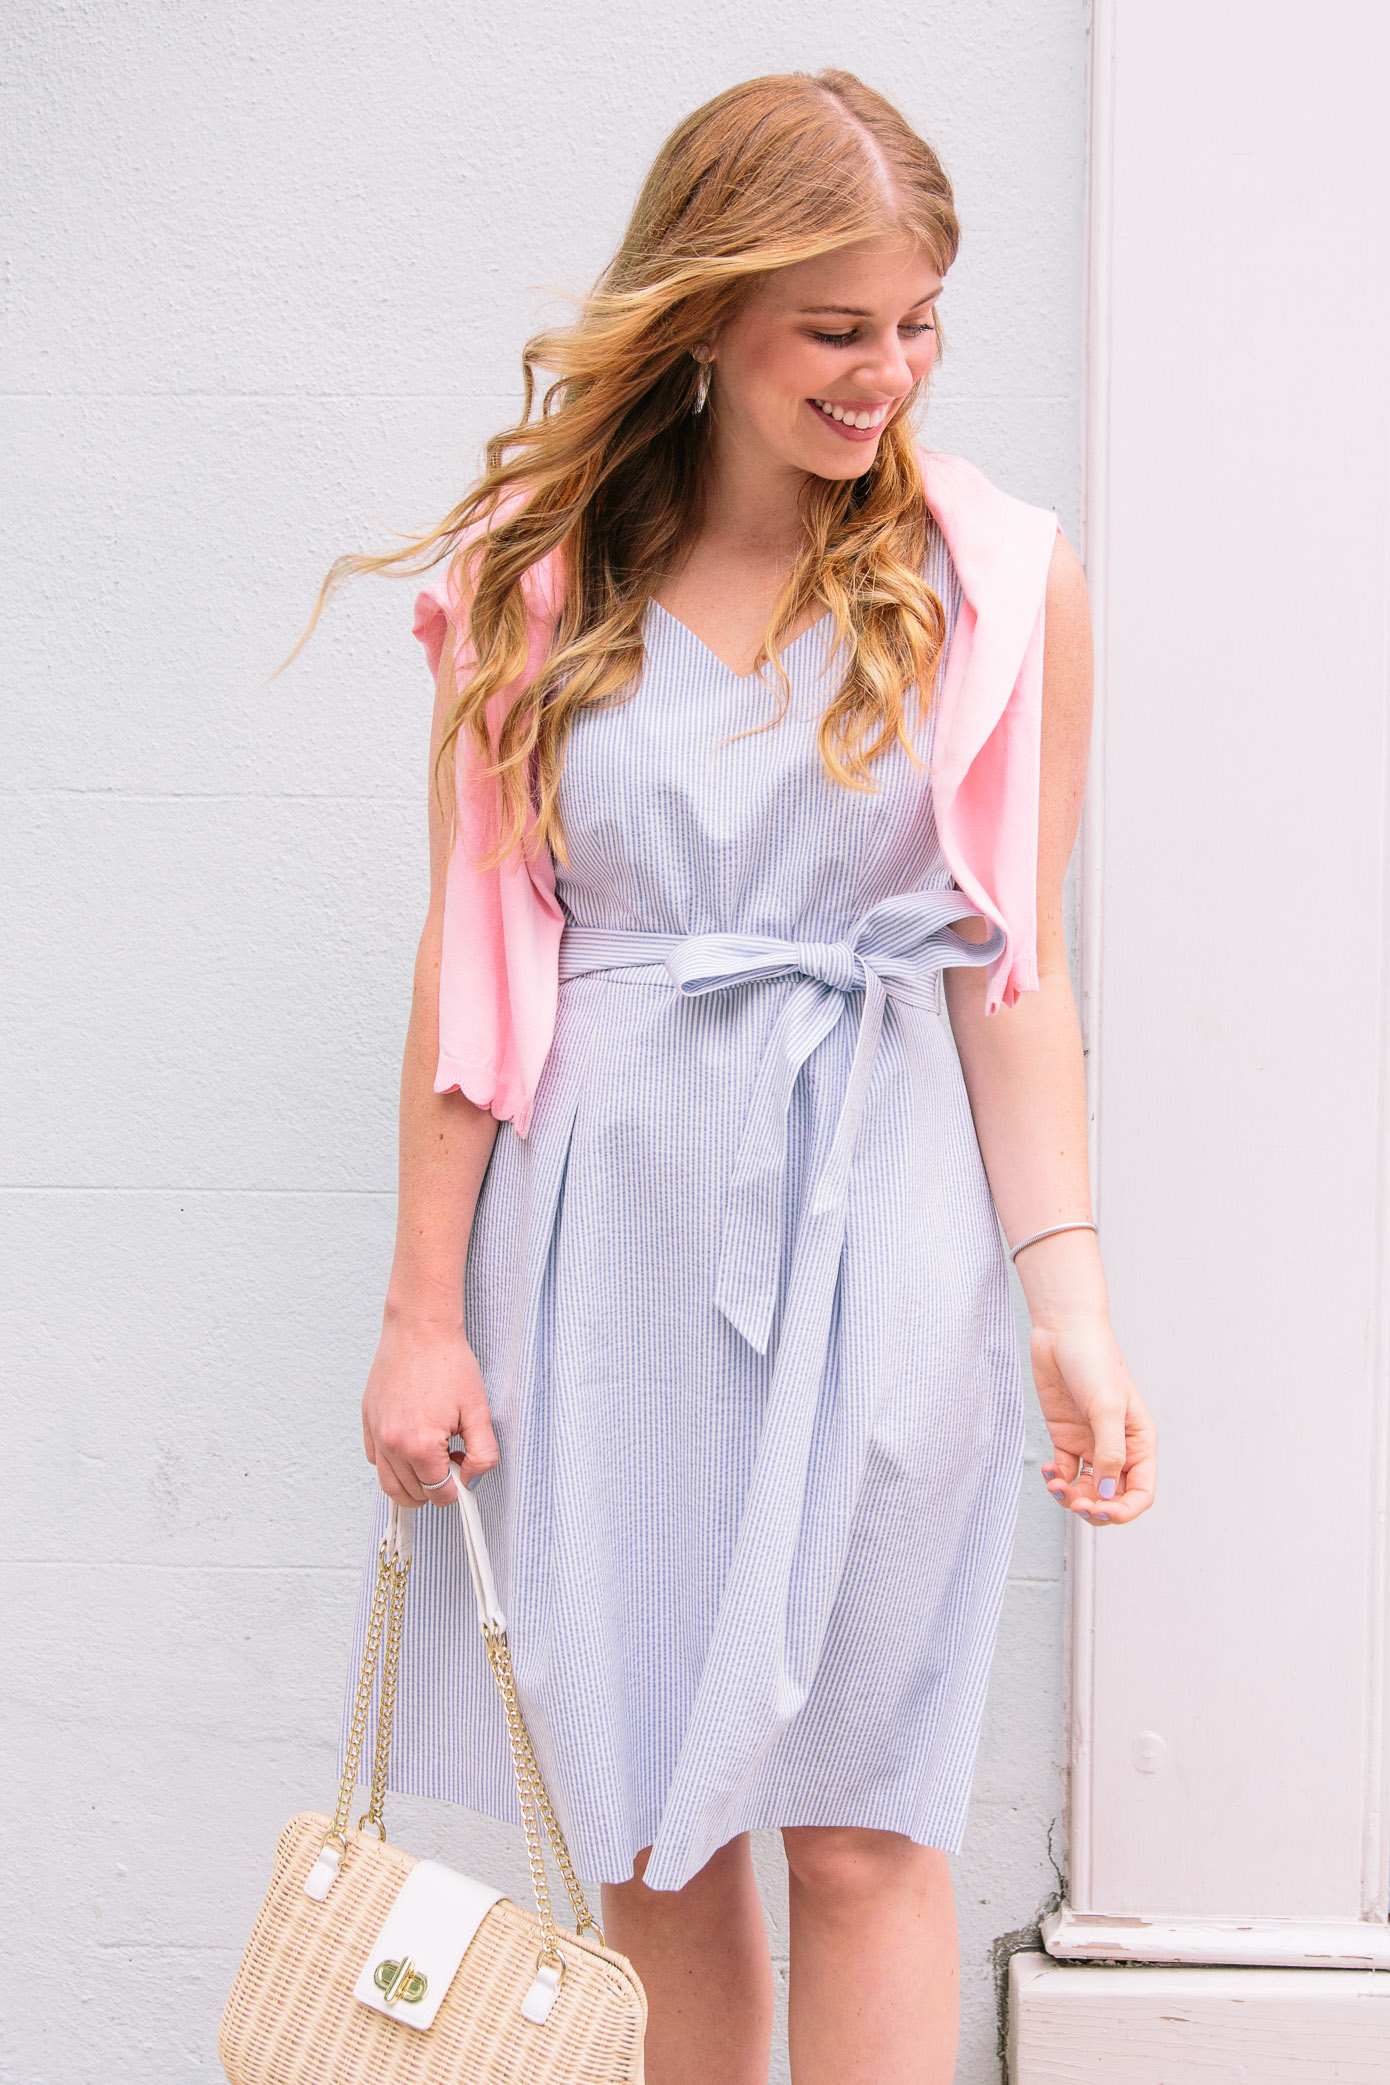 Seersucker Fit and Flare Dress, Millennial Pink Sweater | Talbots Friends & Family Event | Louella Reese Life & Style Blog